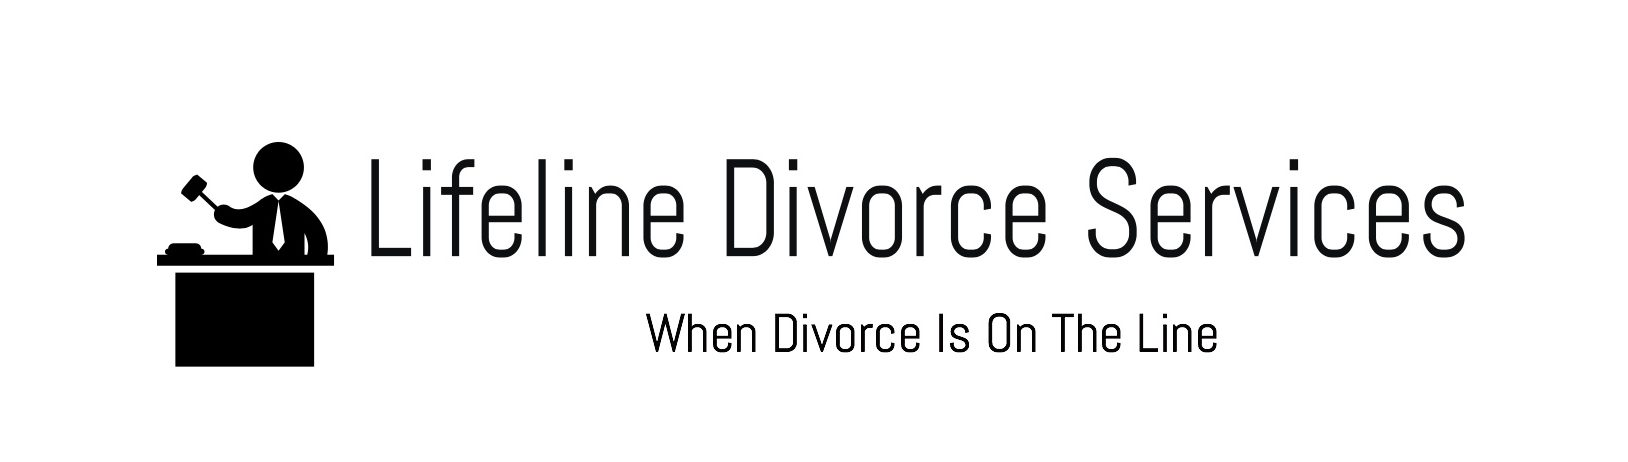 Lifeline Divorce Services